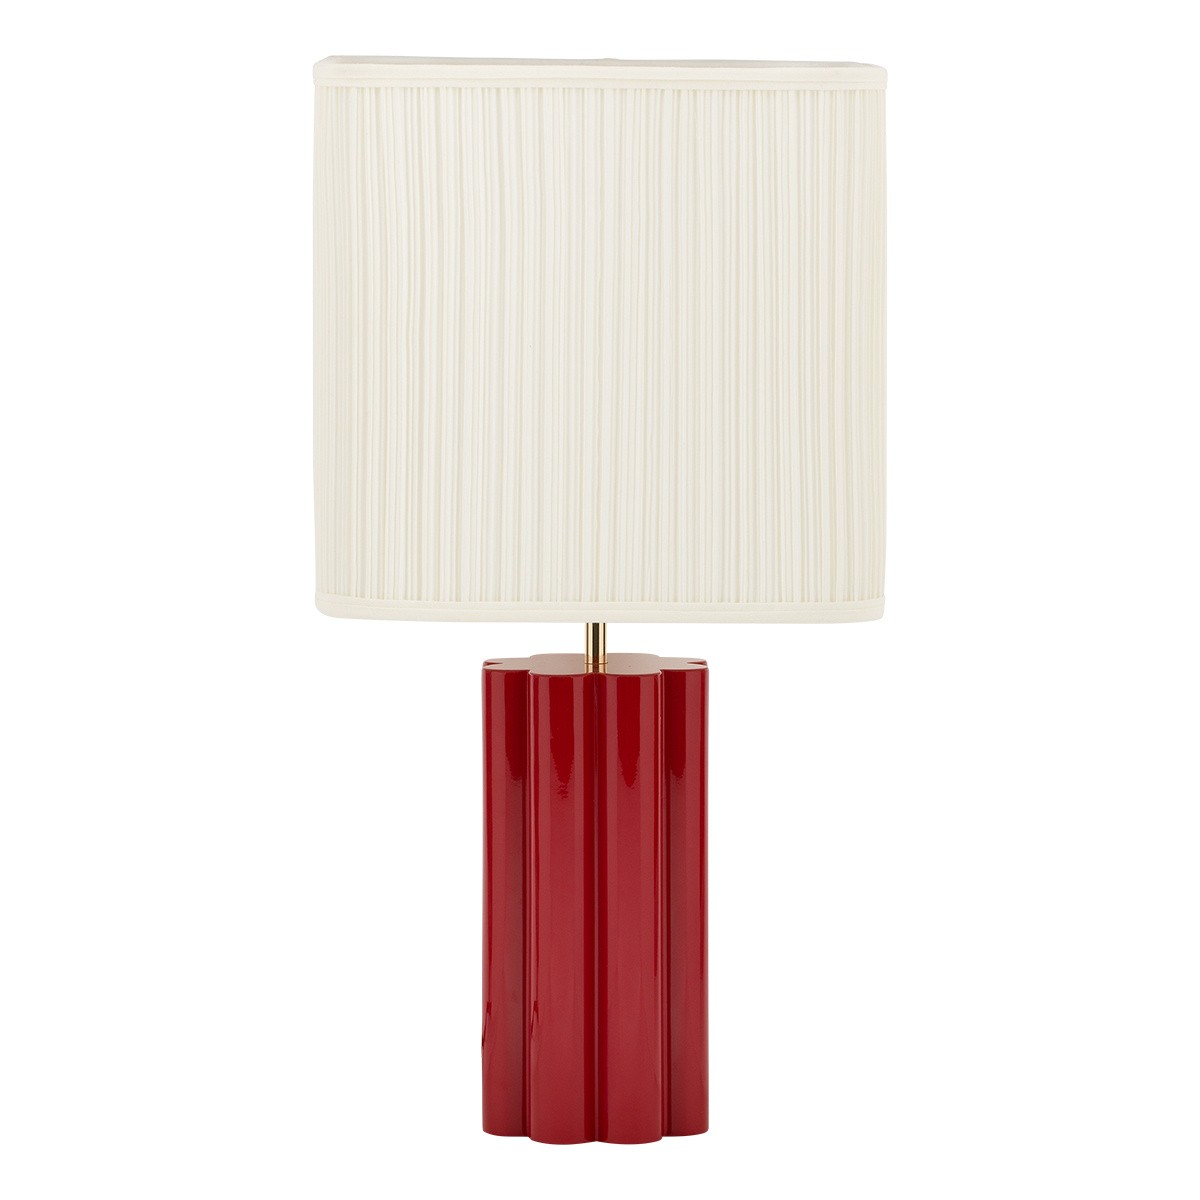 Lampe à poser Gioia rouge